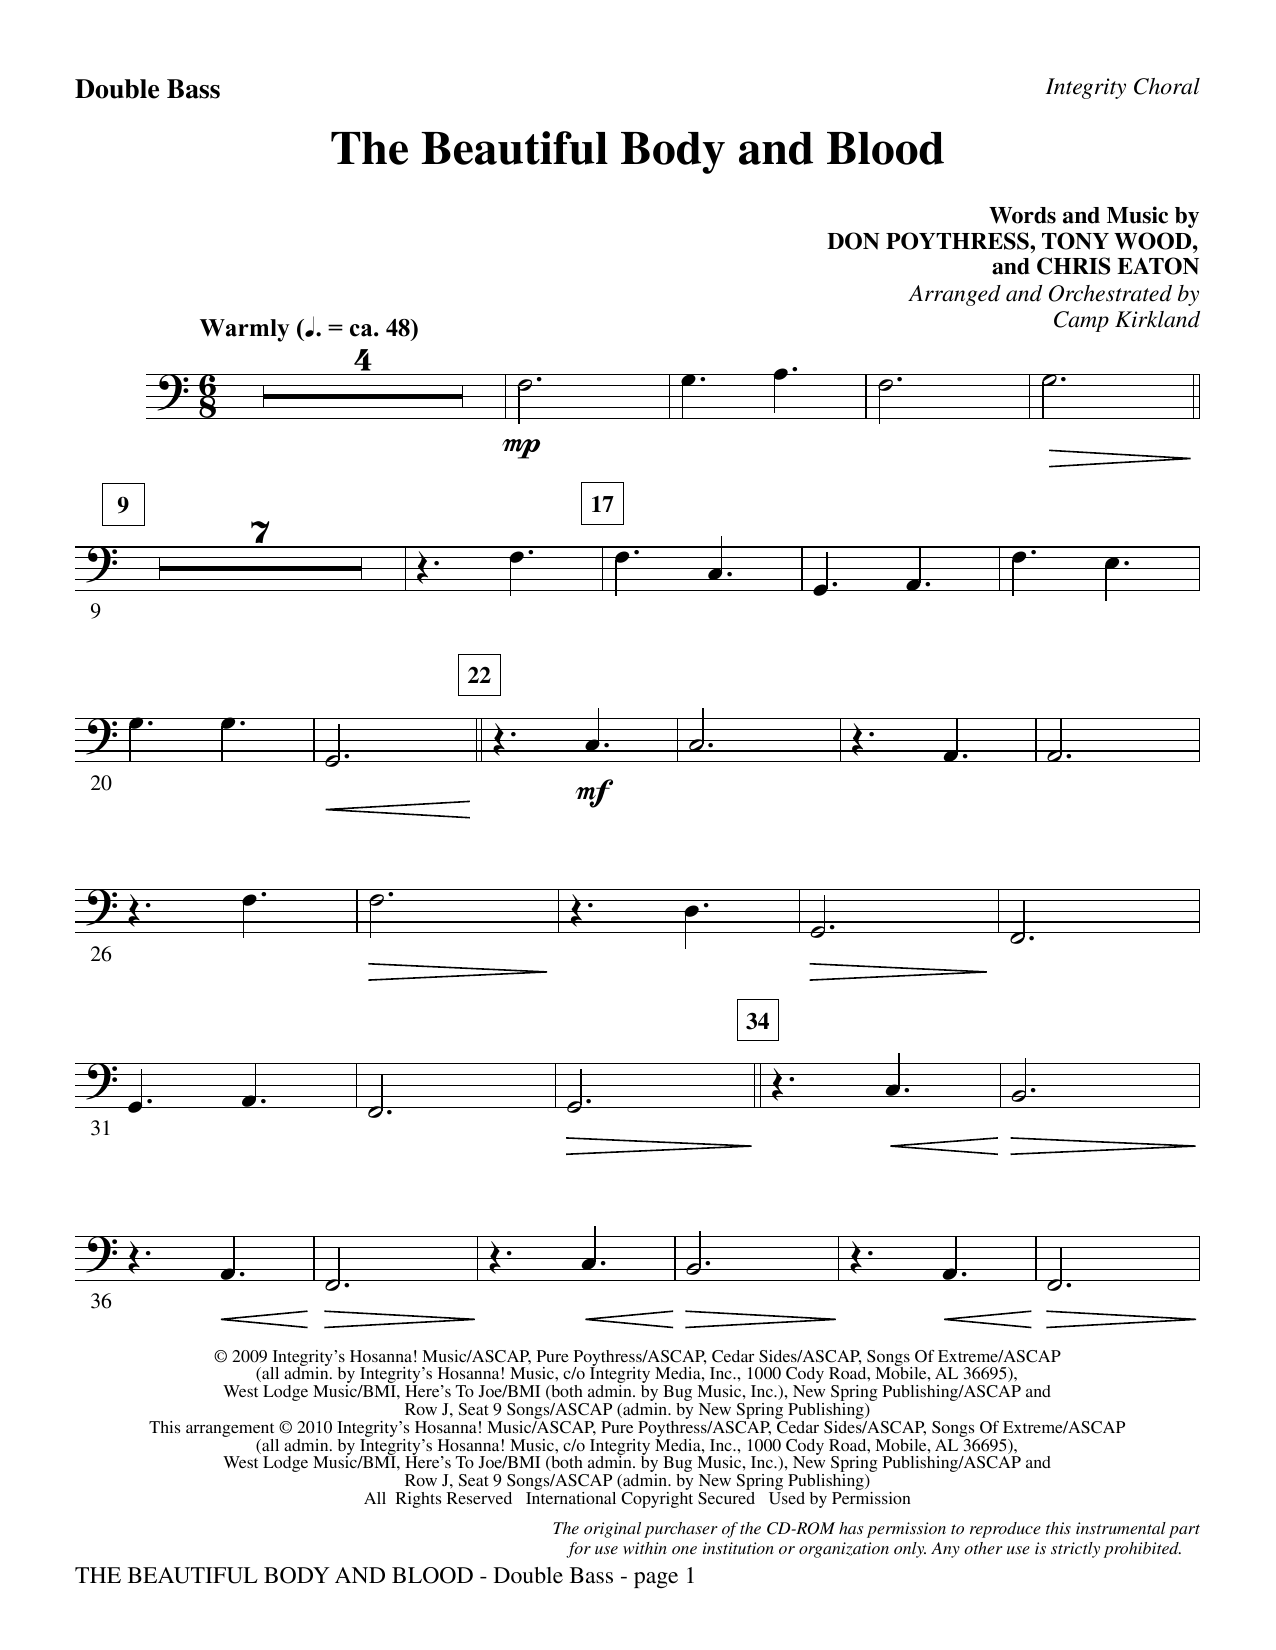 The Beautiful Body And Blood - Double Bass sheet music